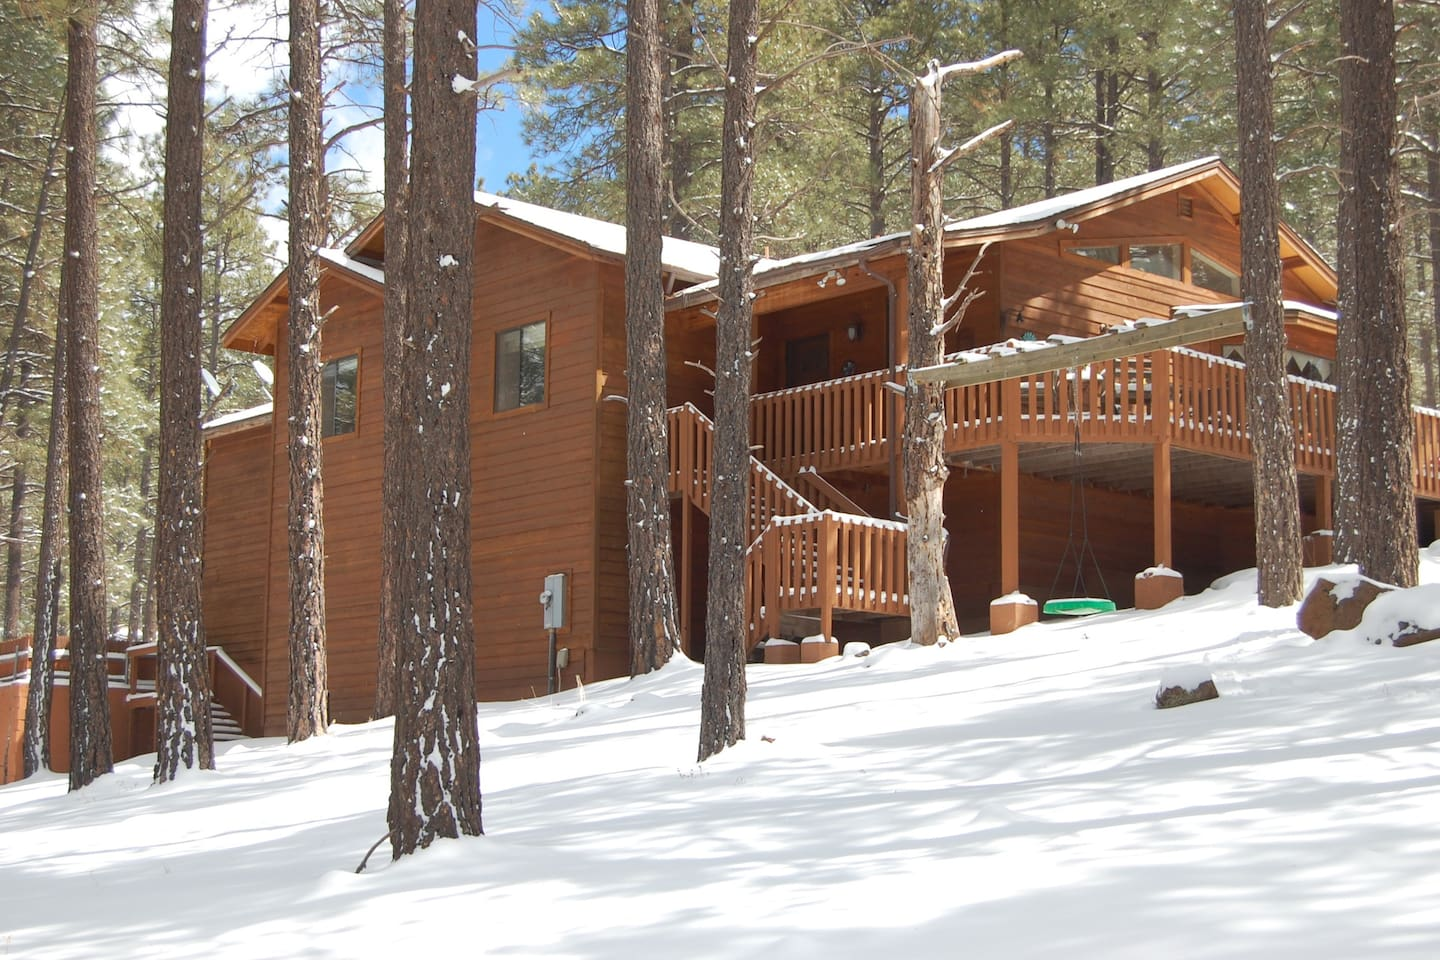 hot az rent in tub cabins cheap munds pe cabin for rentals with sale luxury flagstaff park snowbowl near